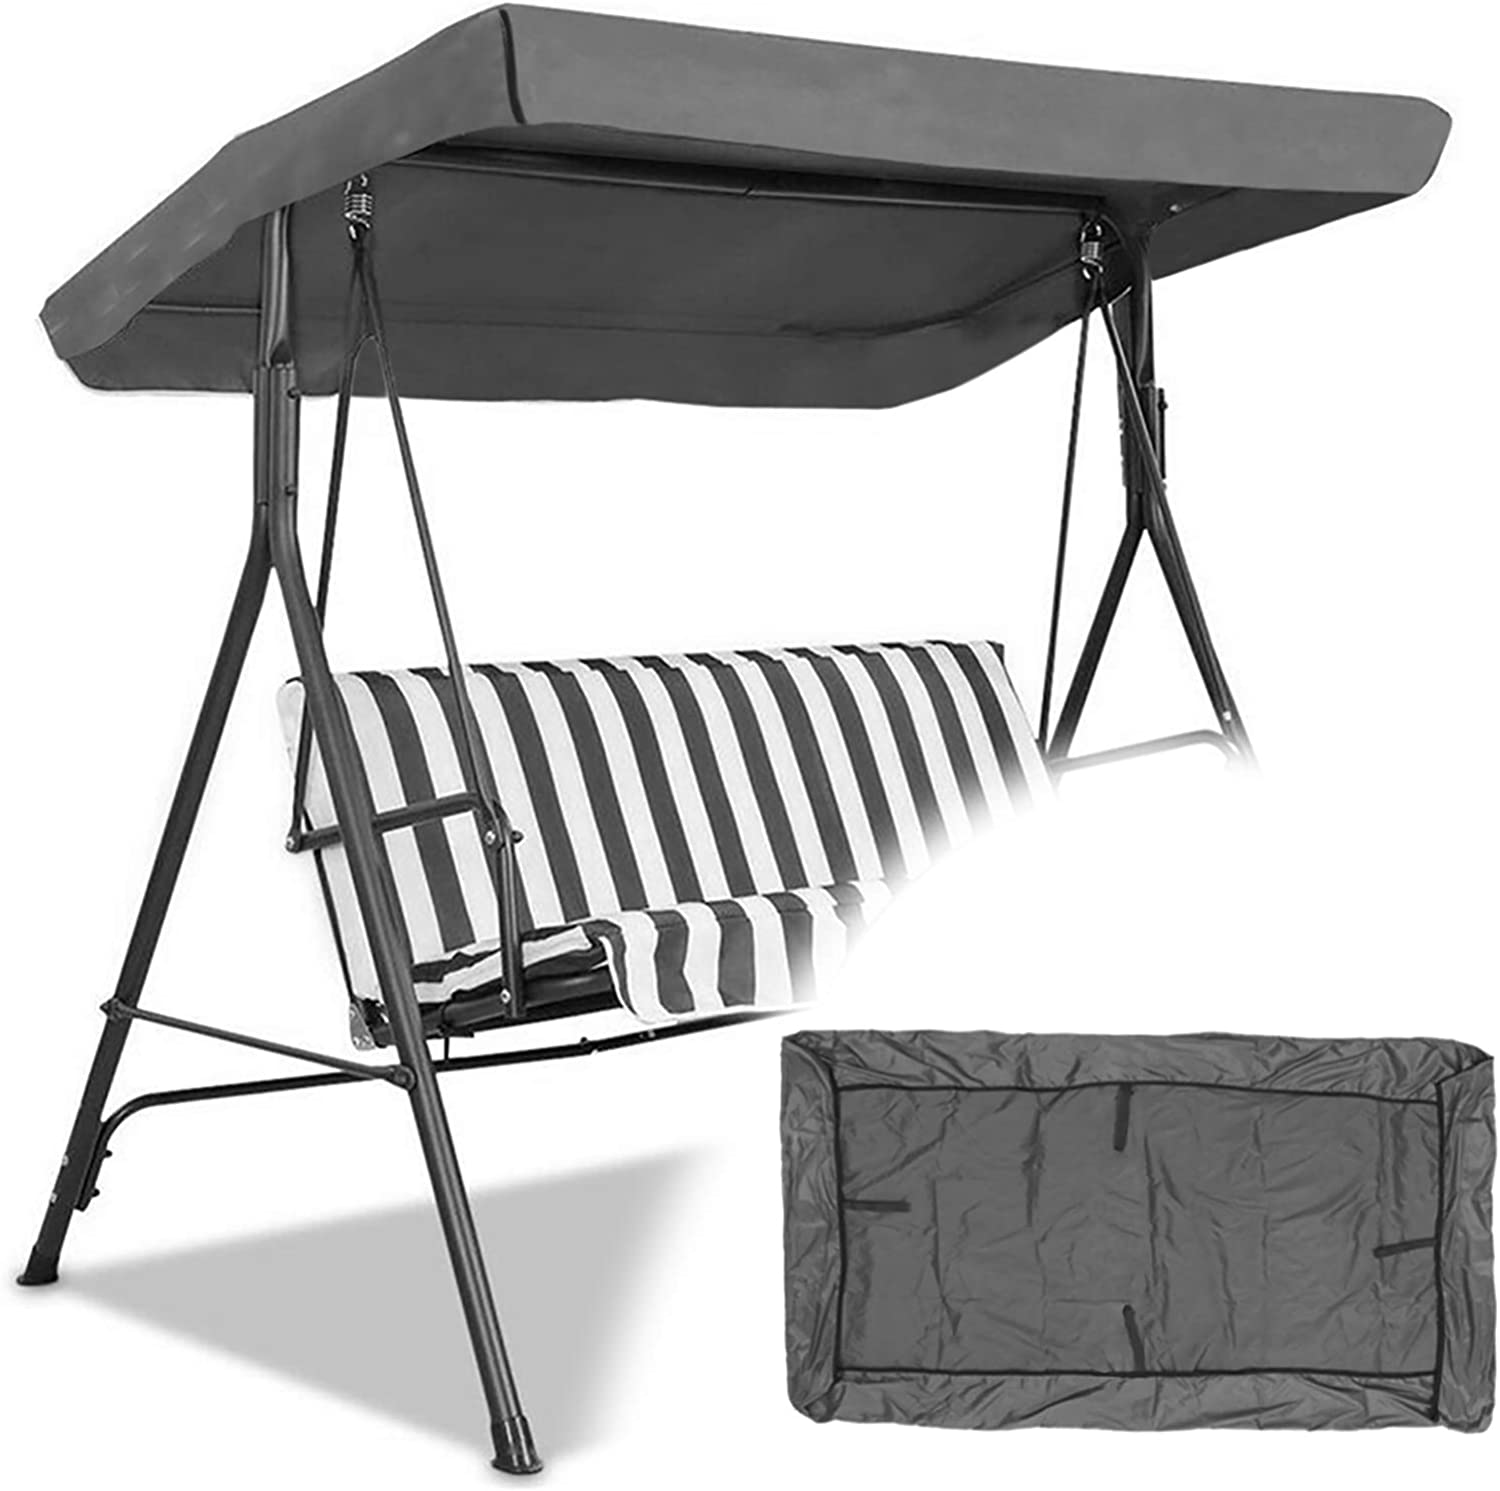 Lsghome Patio Swing Canopy Replacement Top Cover, Replacement Cover for Swing Canopy, Garden Seater Sun Shade Treasures Porch Swing Hammock Protector Furniture Cover (Gray)